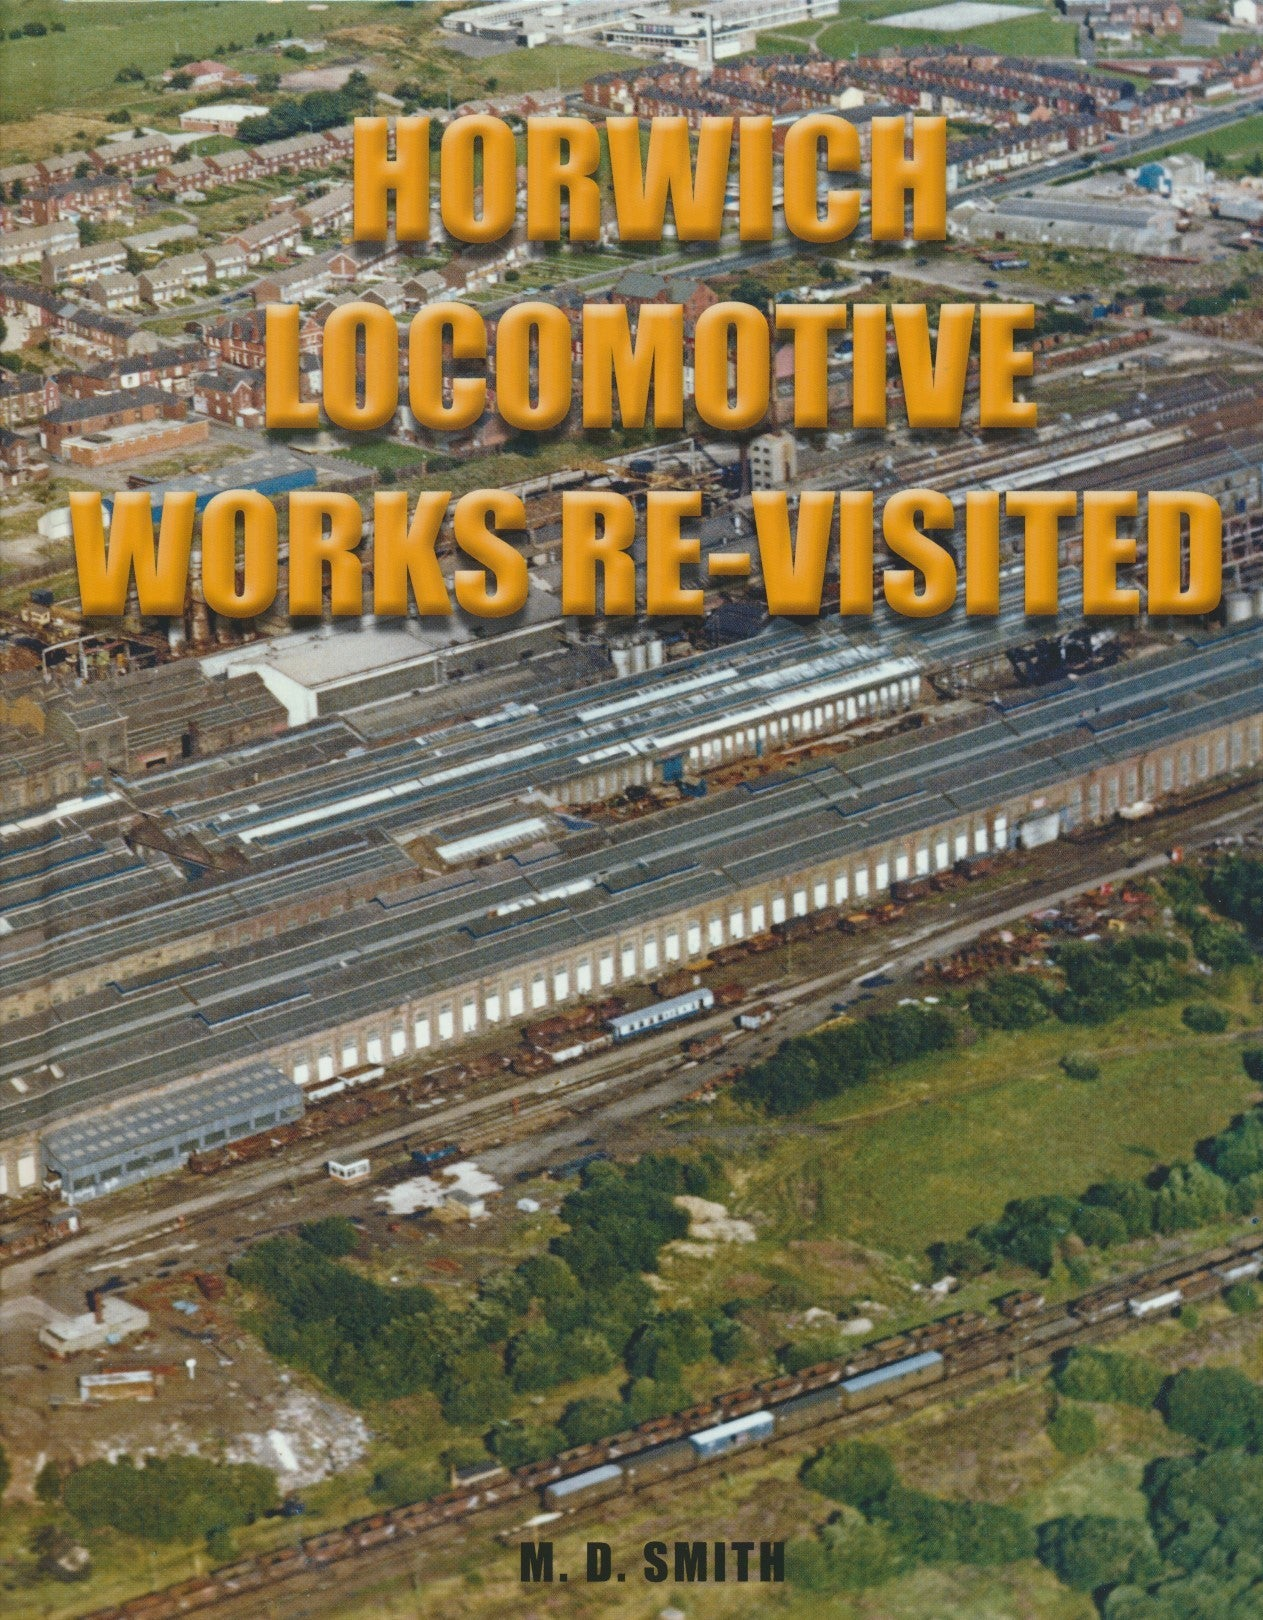 Horwich Locomotive Works Re-Visited